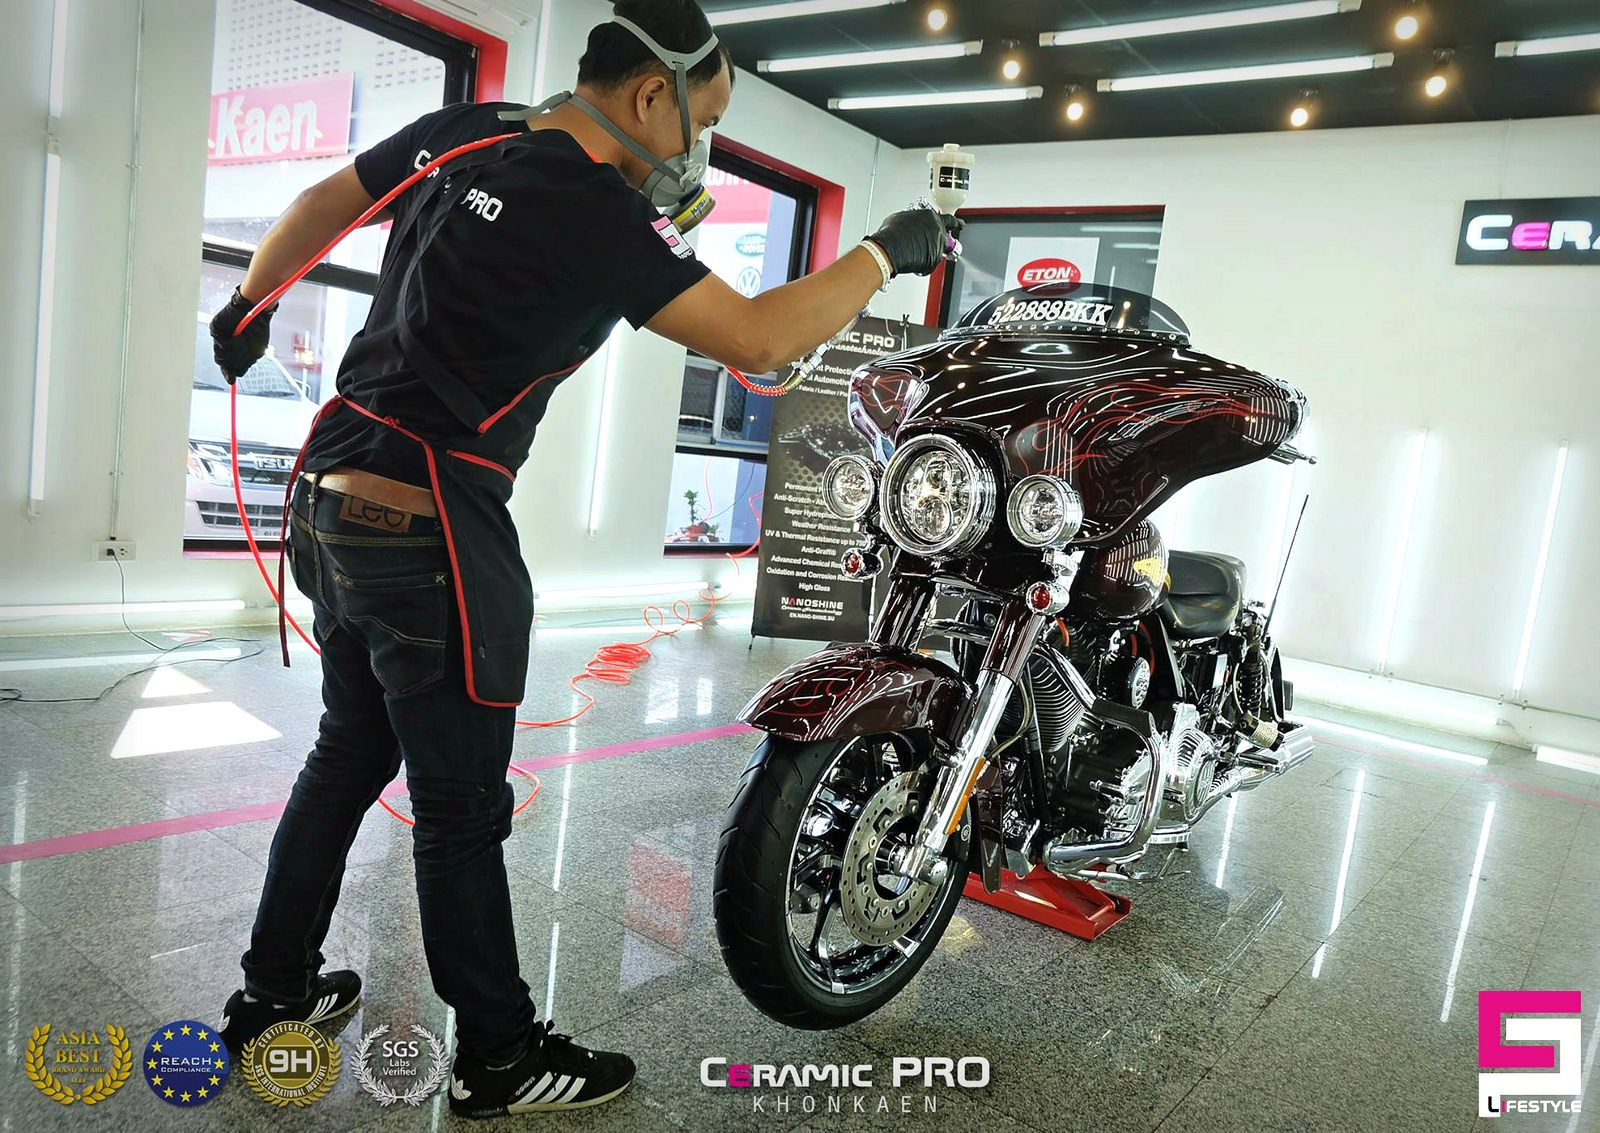 Ultimate Motorcycle Protecion By Ceramic Pro Khon Kaen Ceramic Pro Thailand Khon Kaen Motorcycle Thailand